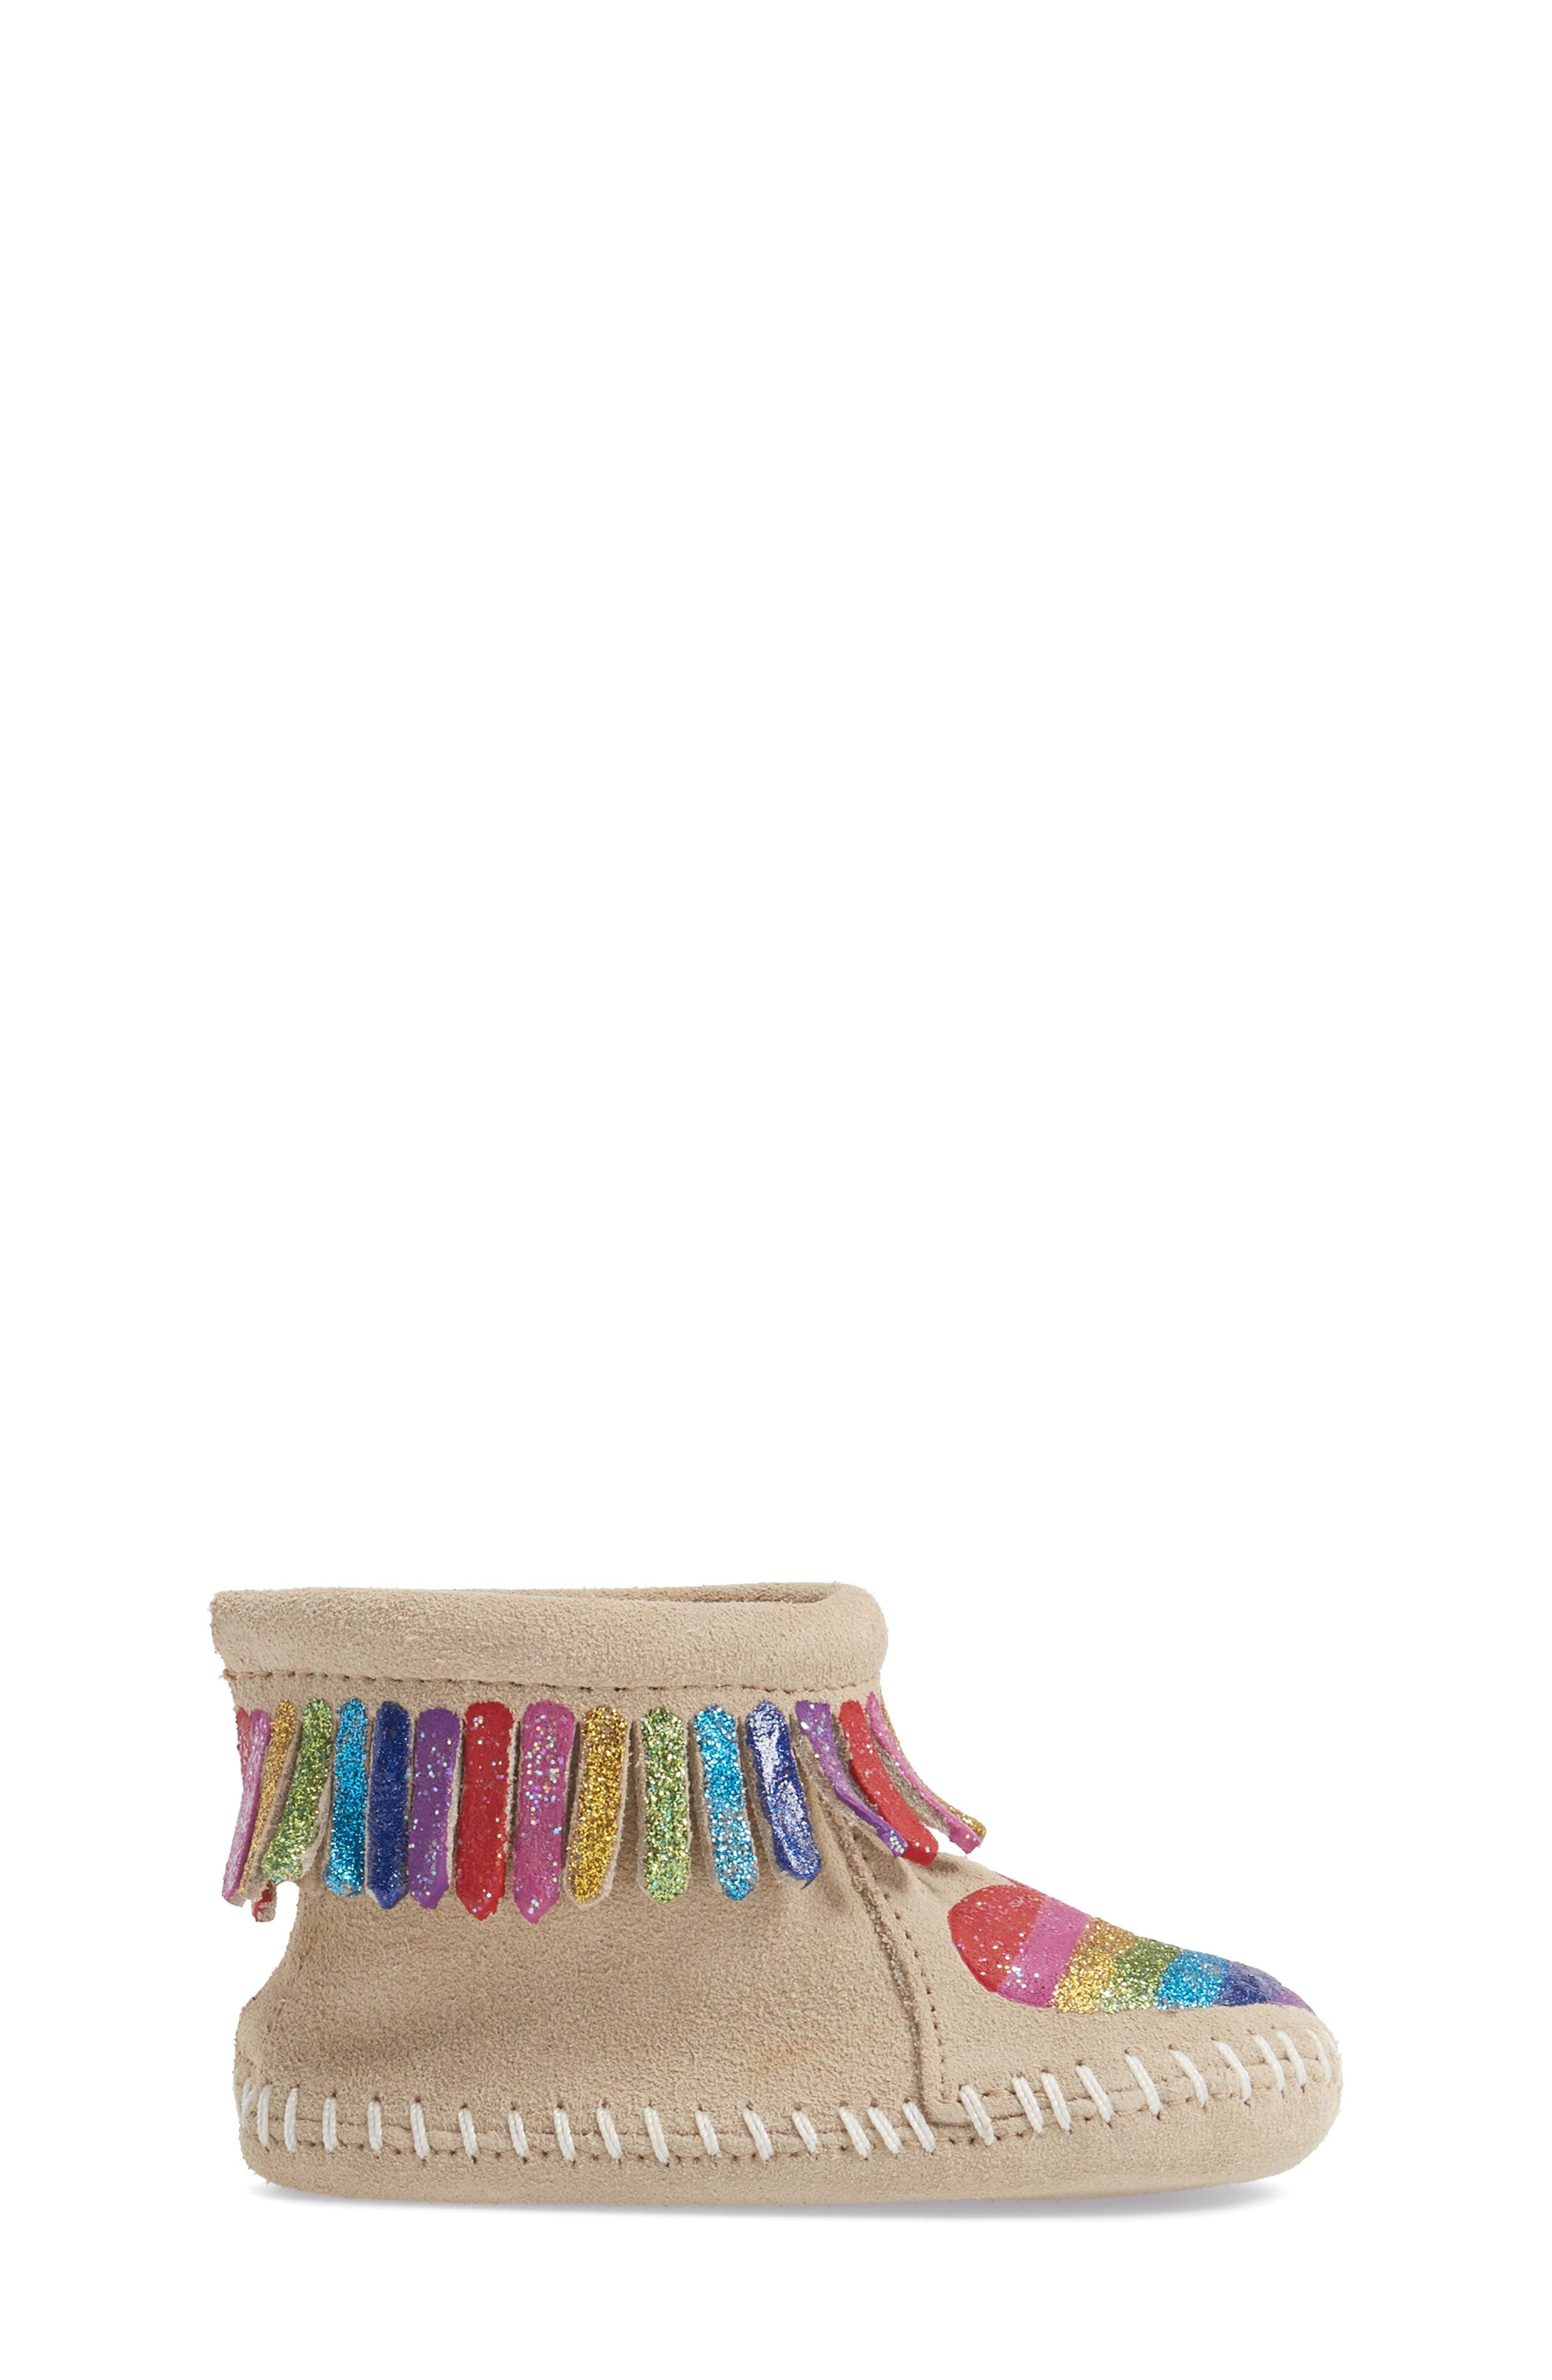 x Free Range Mama Love One Another Bootie,                             Alternate thumbnail 3, color,                             STONE